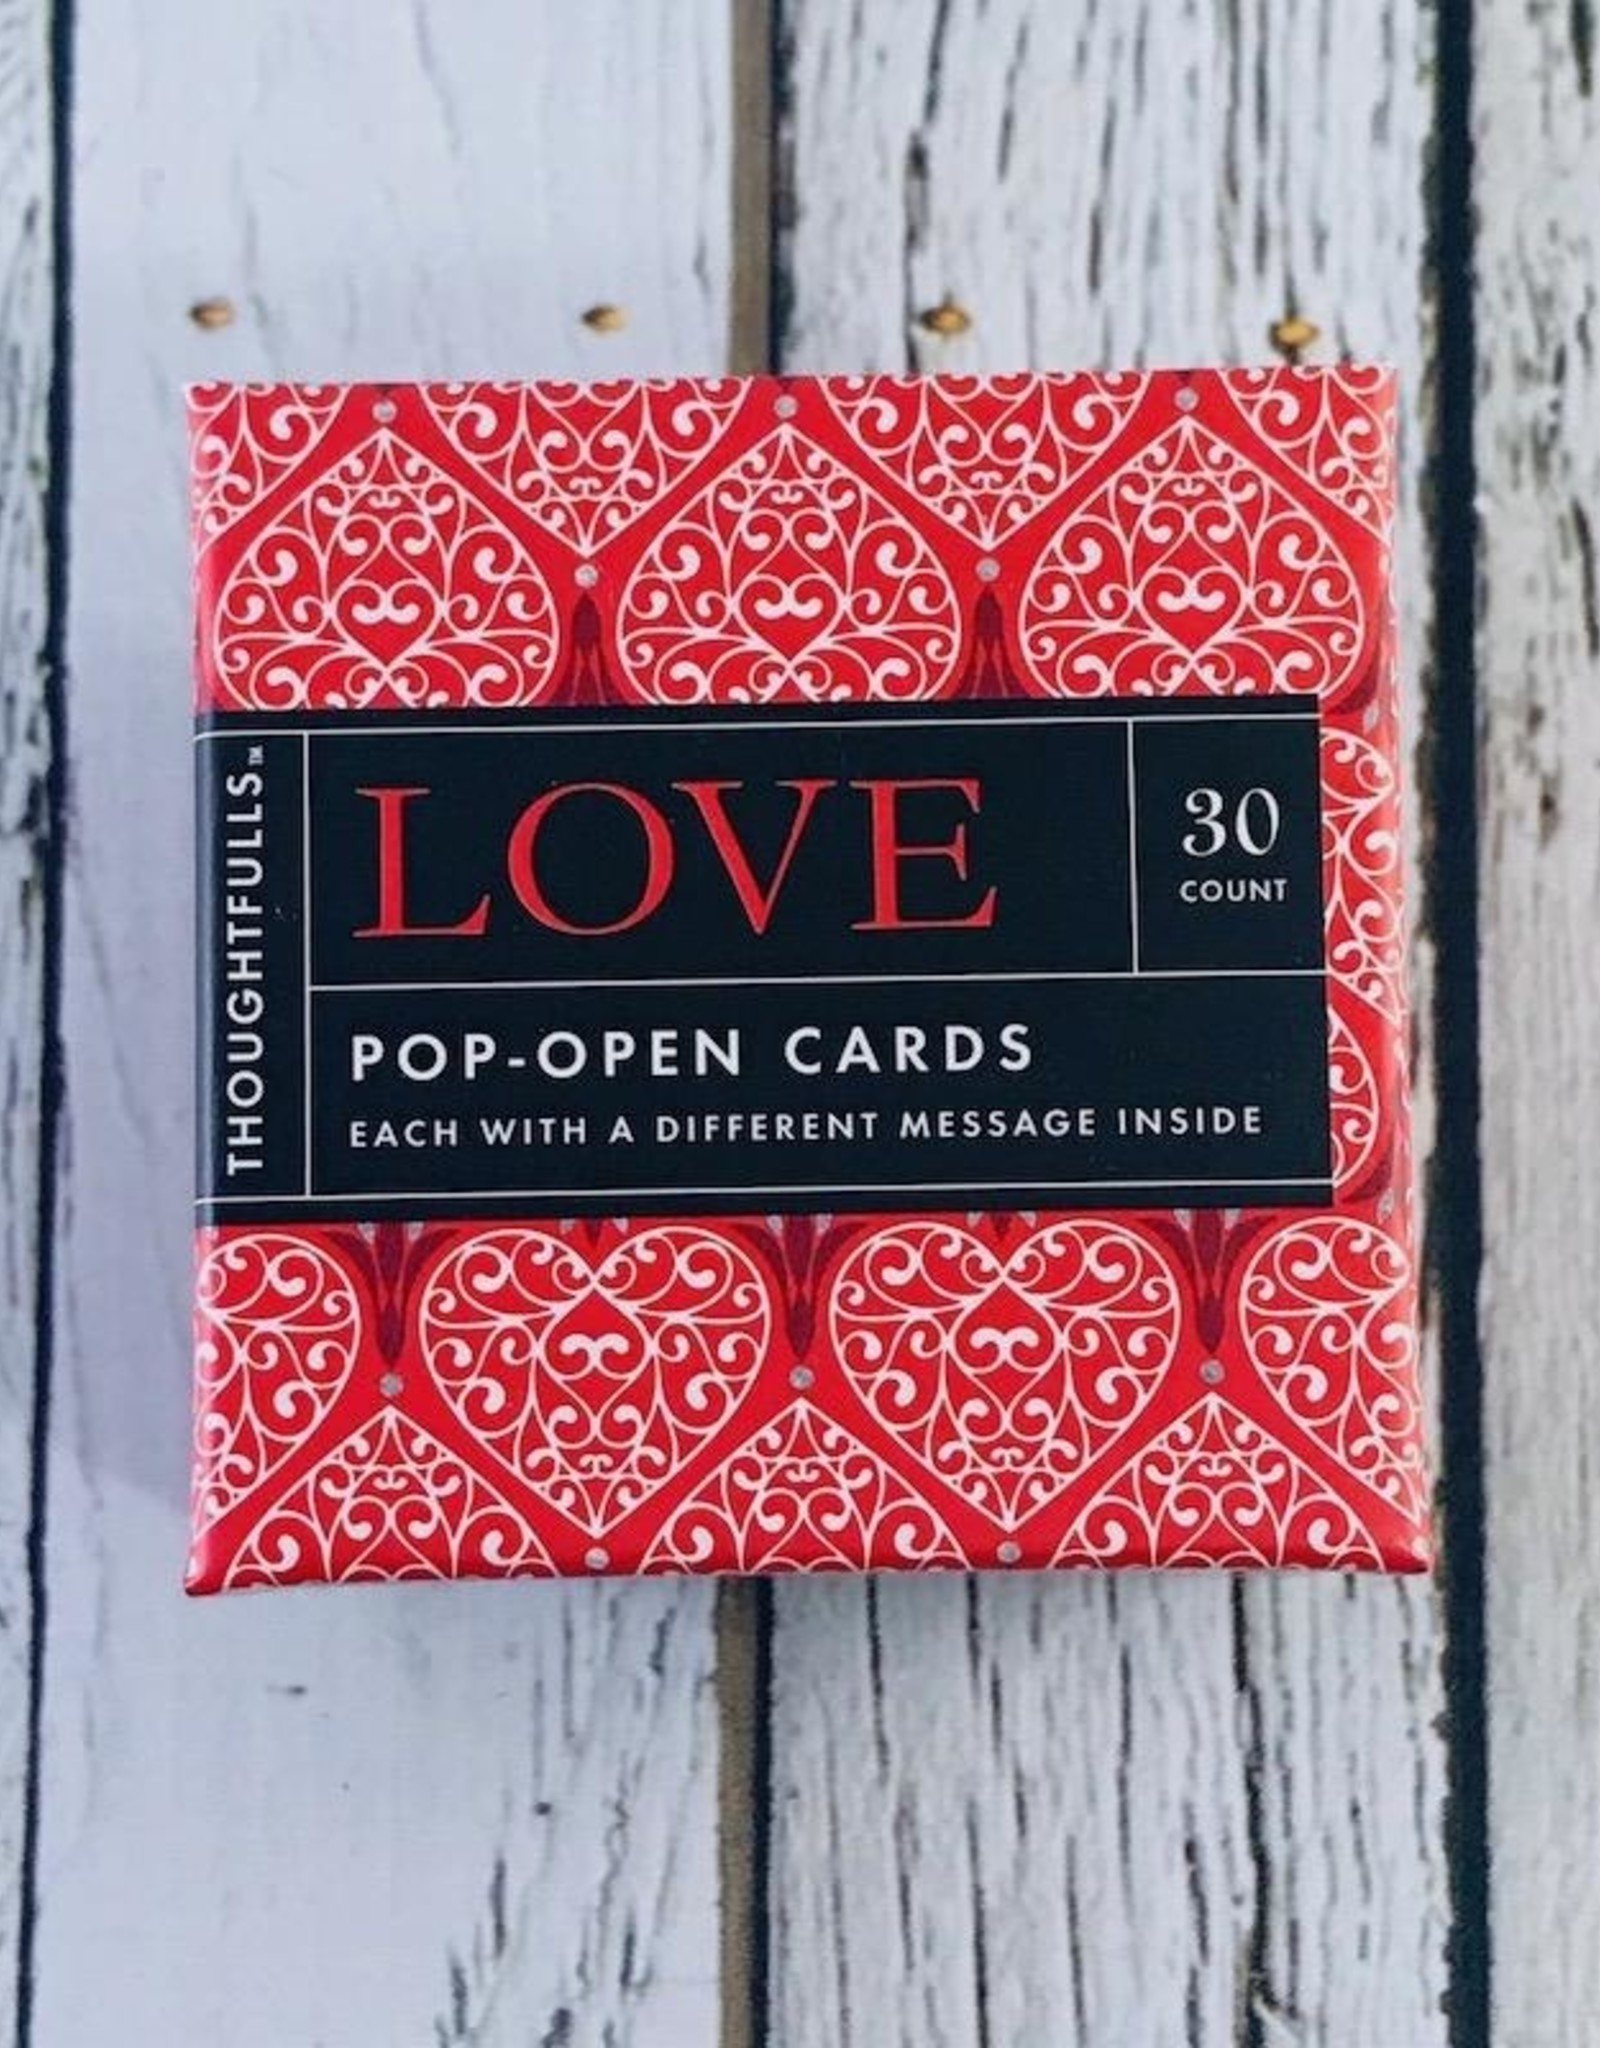 Love Thoughtfuls Box, set of 30 window cards